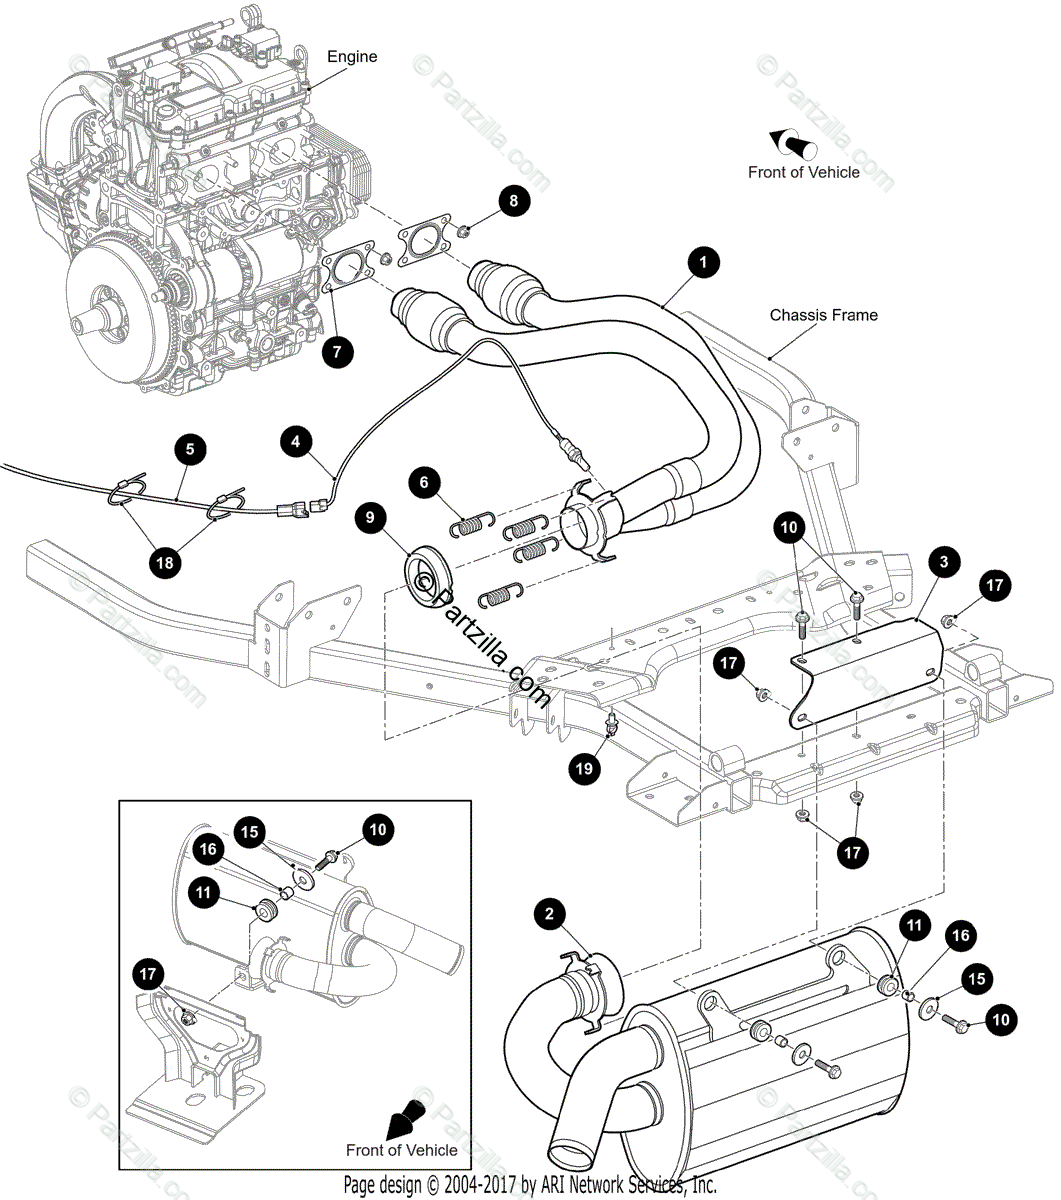 Arctic Cat Side By Side Oem Parts Diagram For Muffler